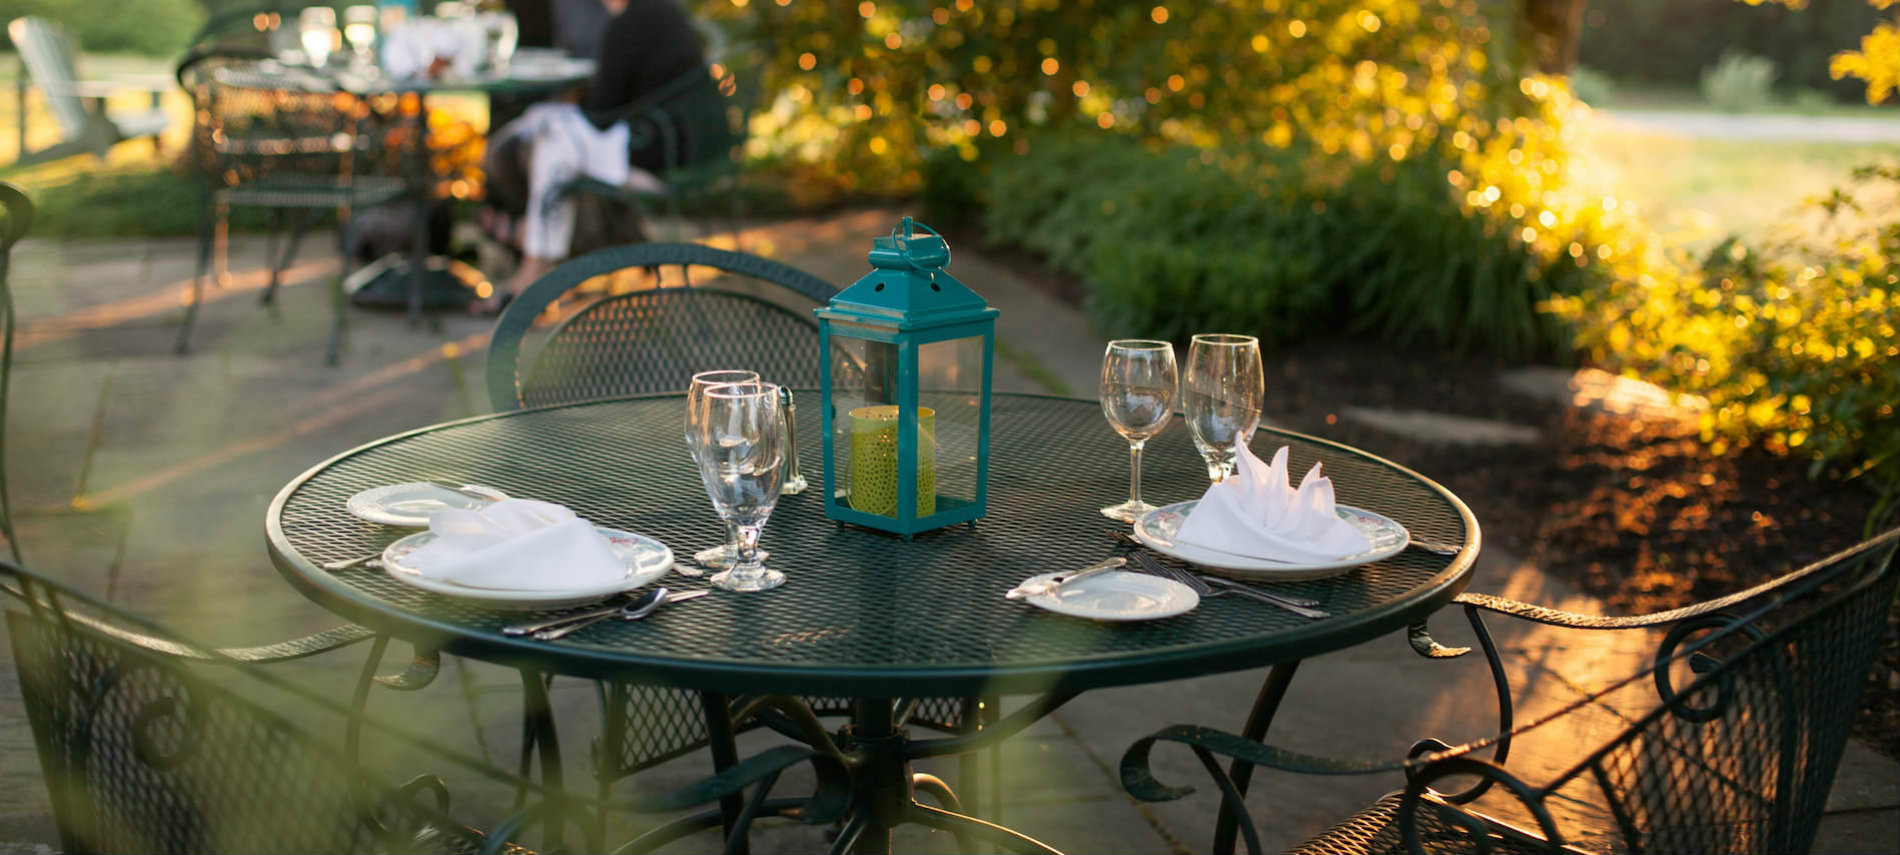 A green cafe table is set for two with white dishes on a brick patio.